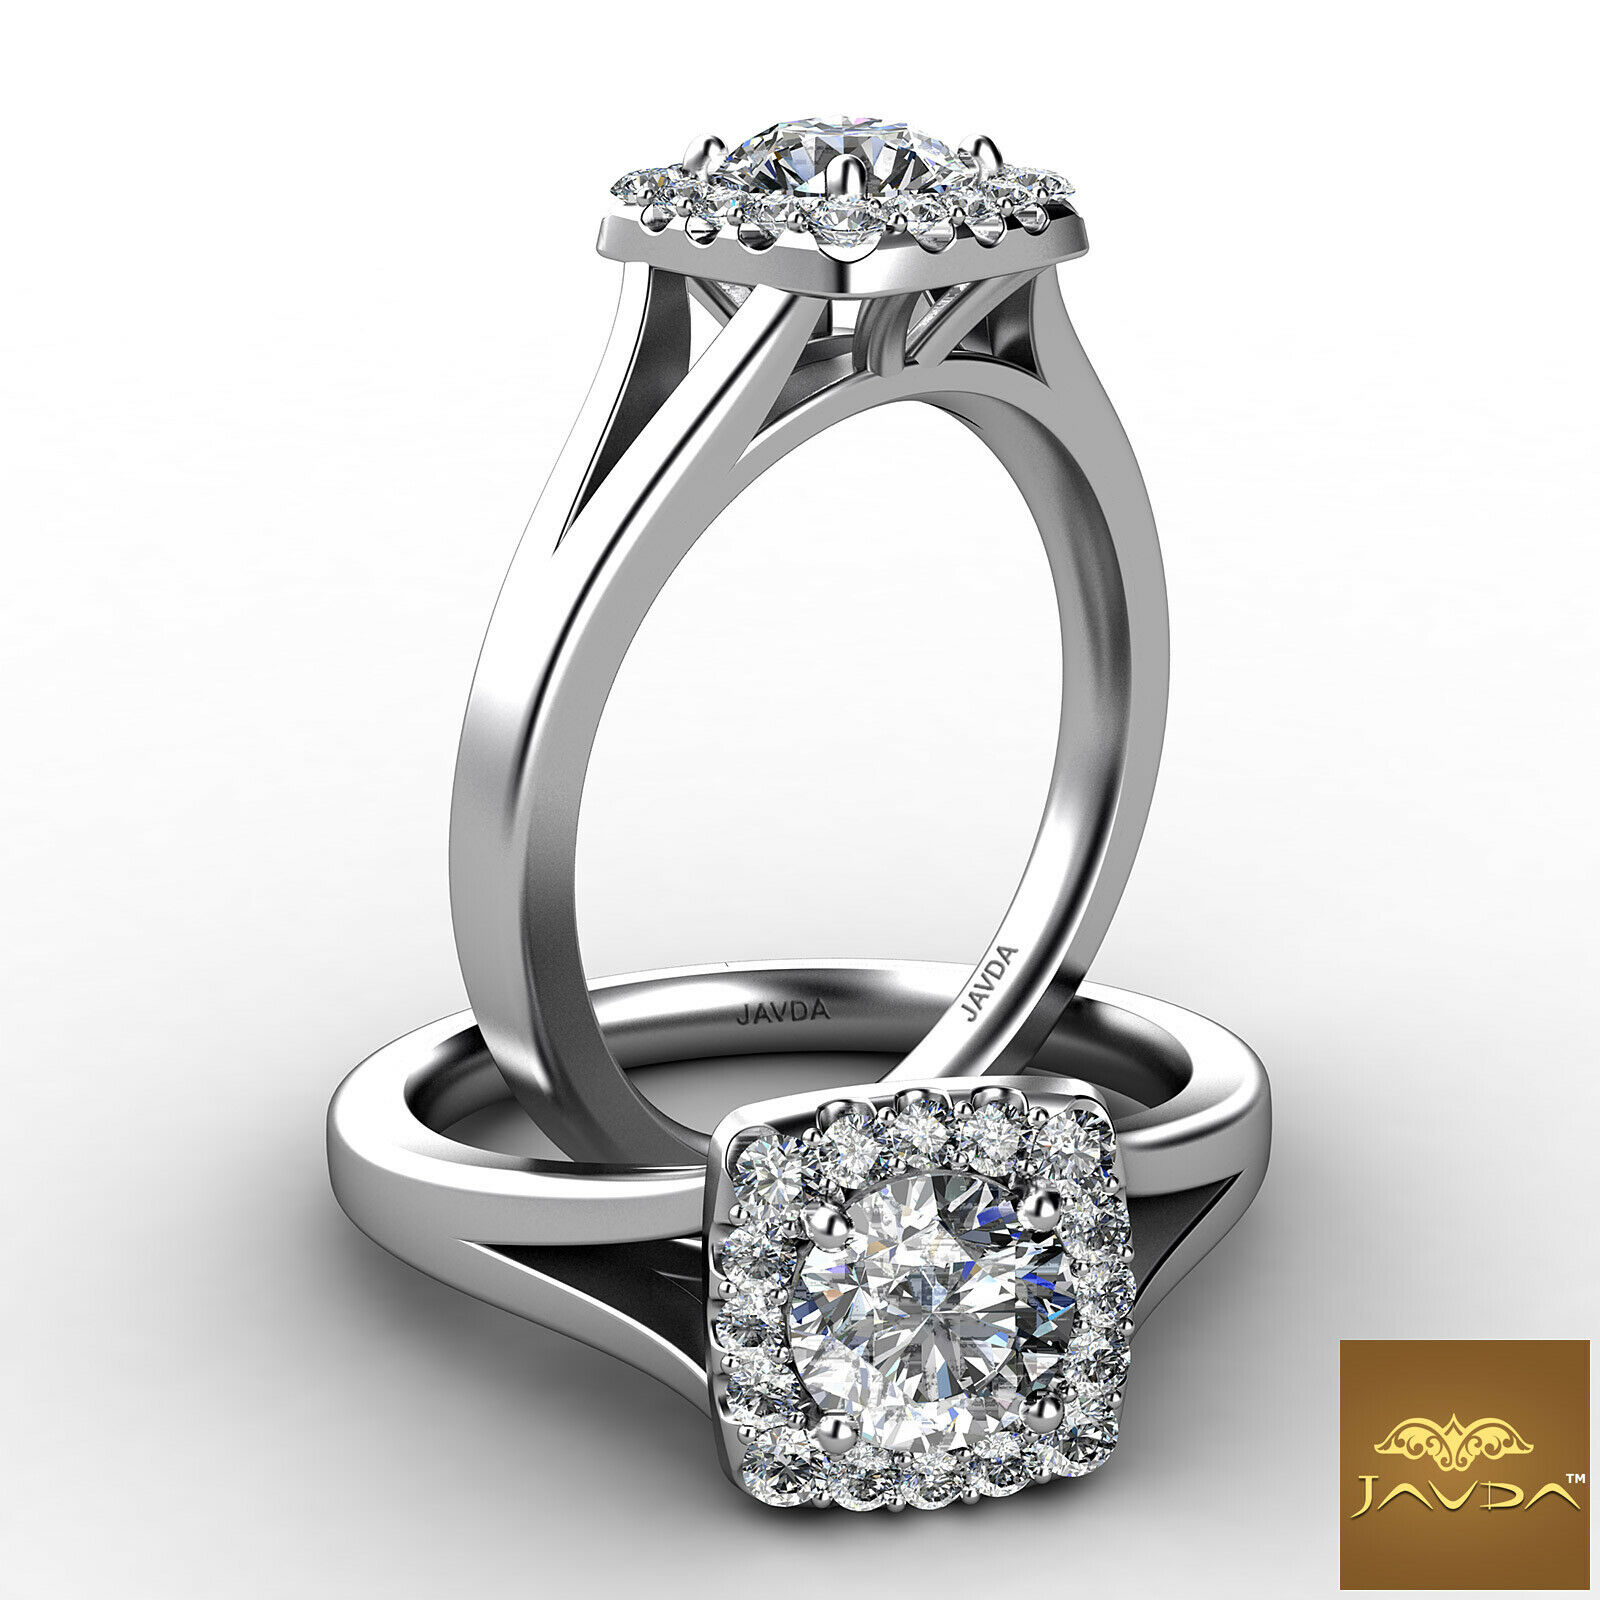 2.8ctw Halo Split Shank Cathedral Round Diamond Engagement Ring GIA D-VS1 W Gold